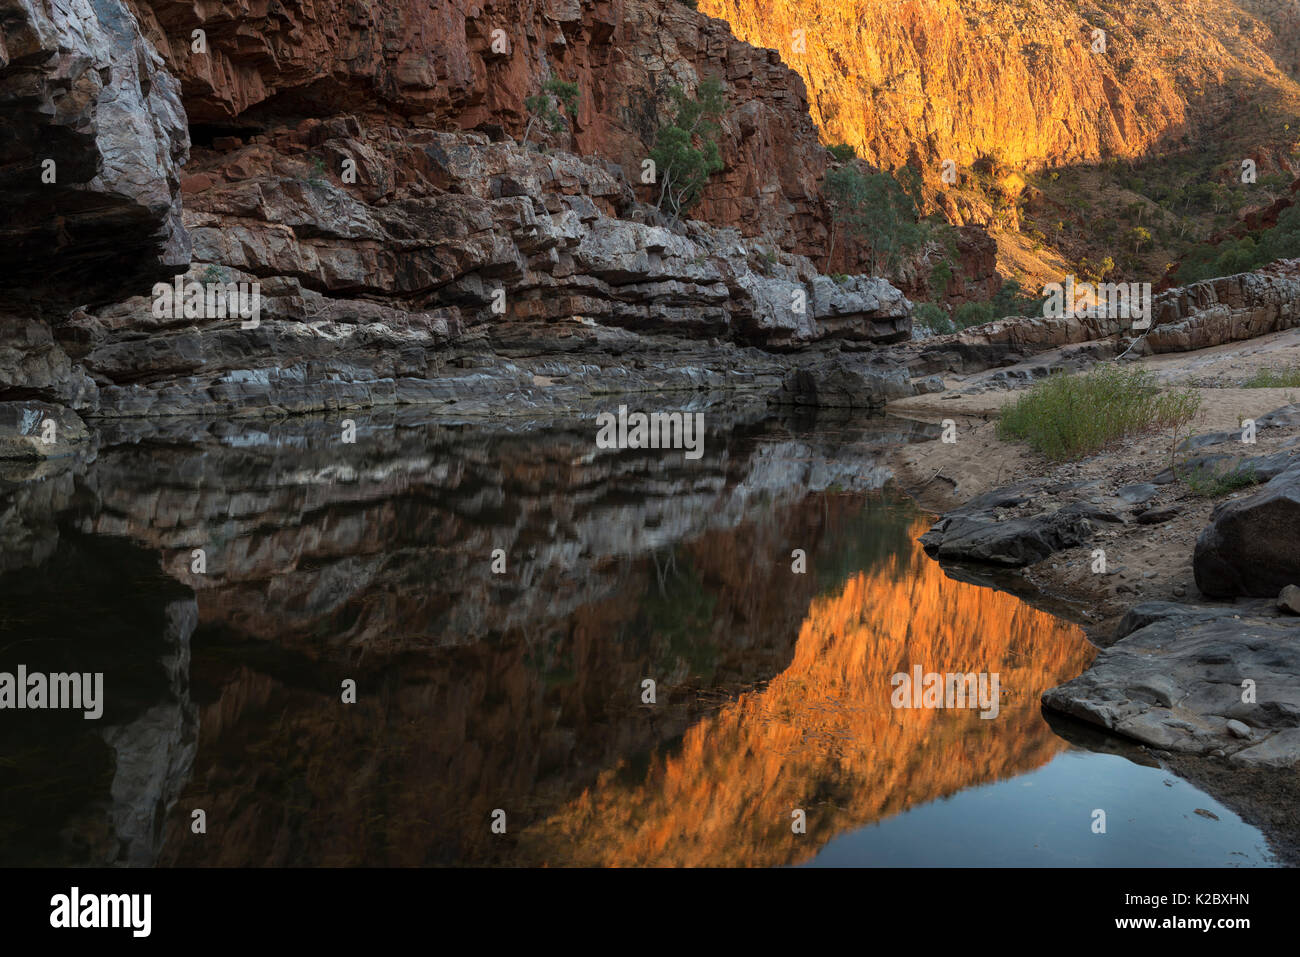 Reflections in waterhole, Ormiston Gorge, West MacDonnell Ranges Alice Springs, Northern Territory, Australia. - Stock Image